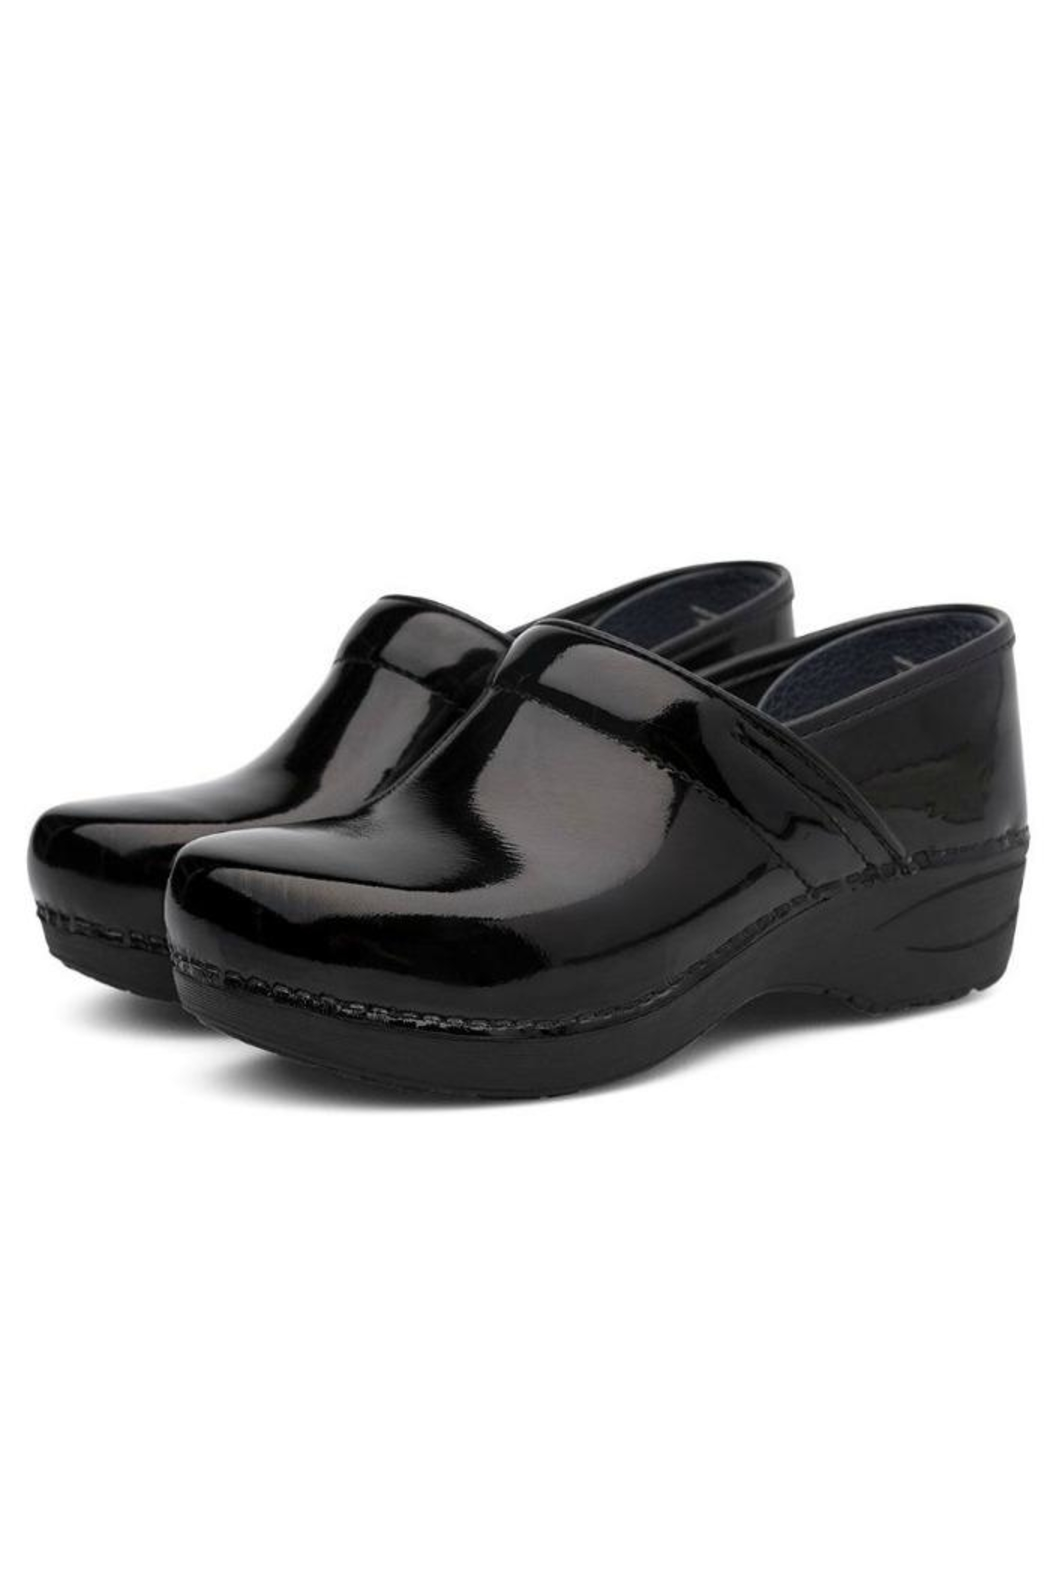 Dansko Xp2.0 Clogs - Front Full Image